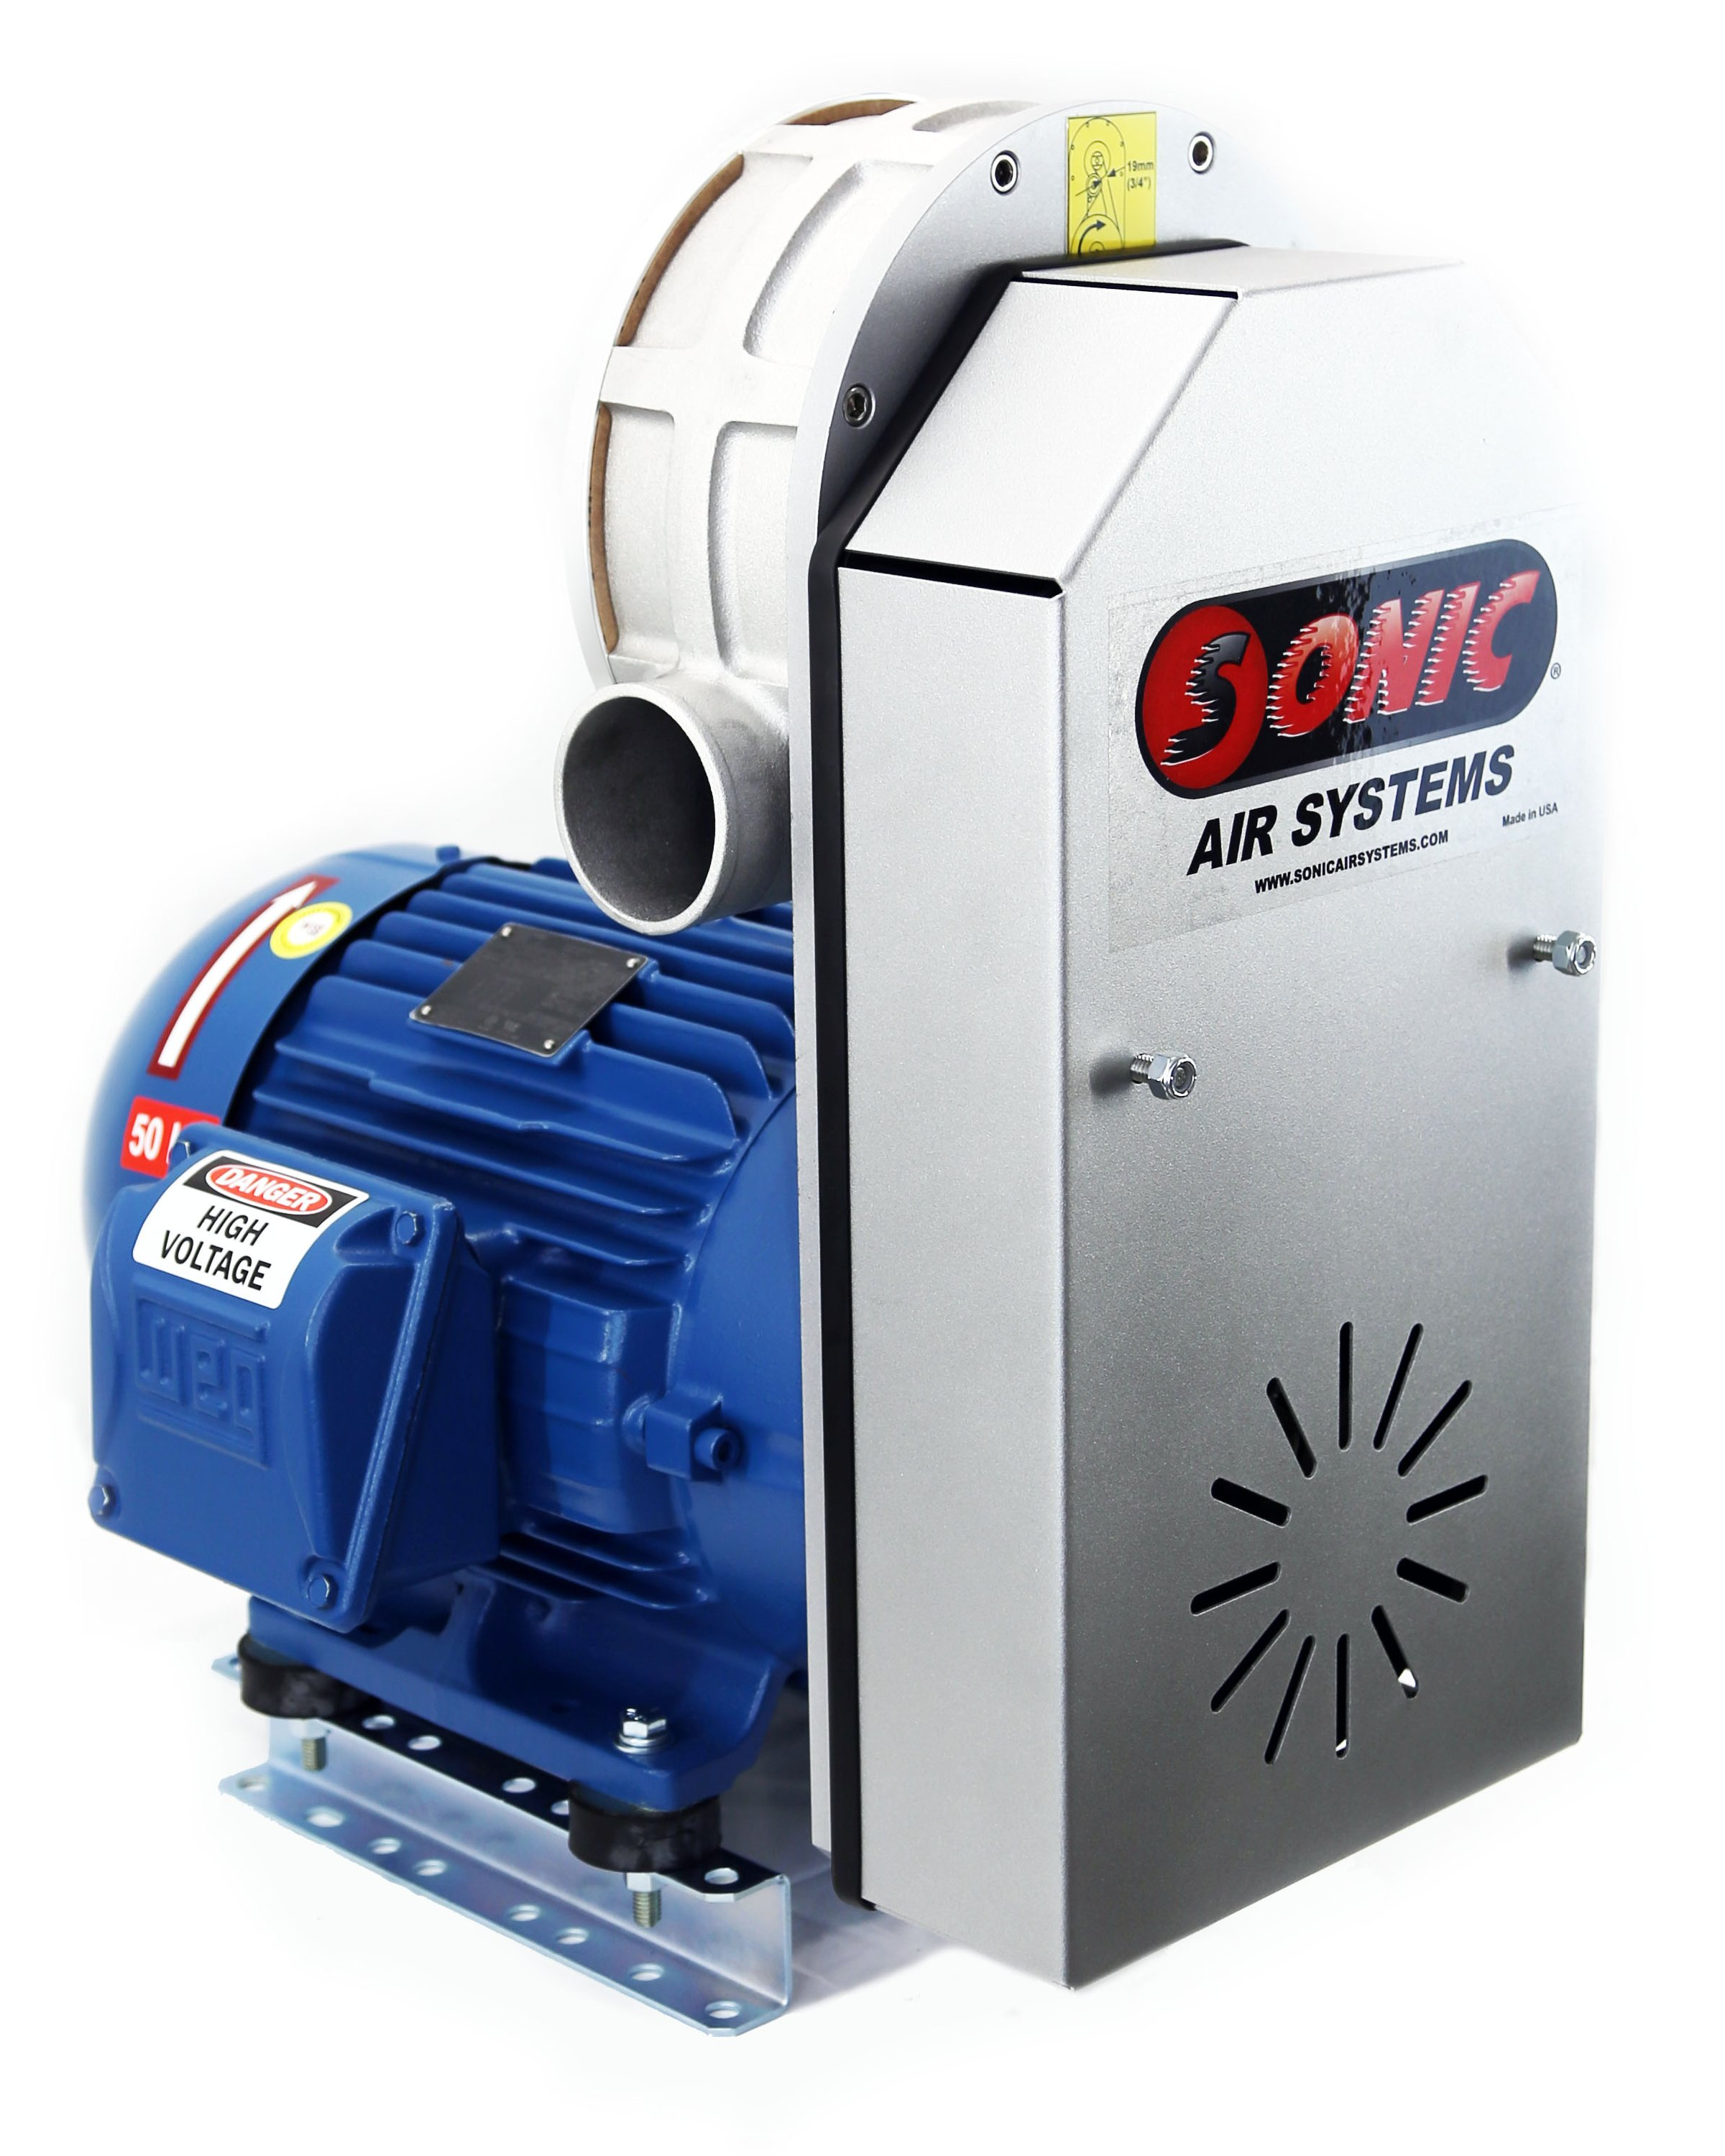 Sonic Air Centrifugal Blowers - Sonic Industrial Air Blowers - Sonic